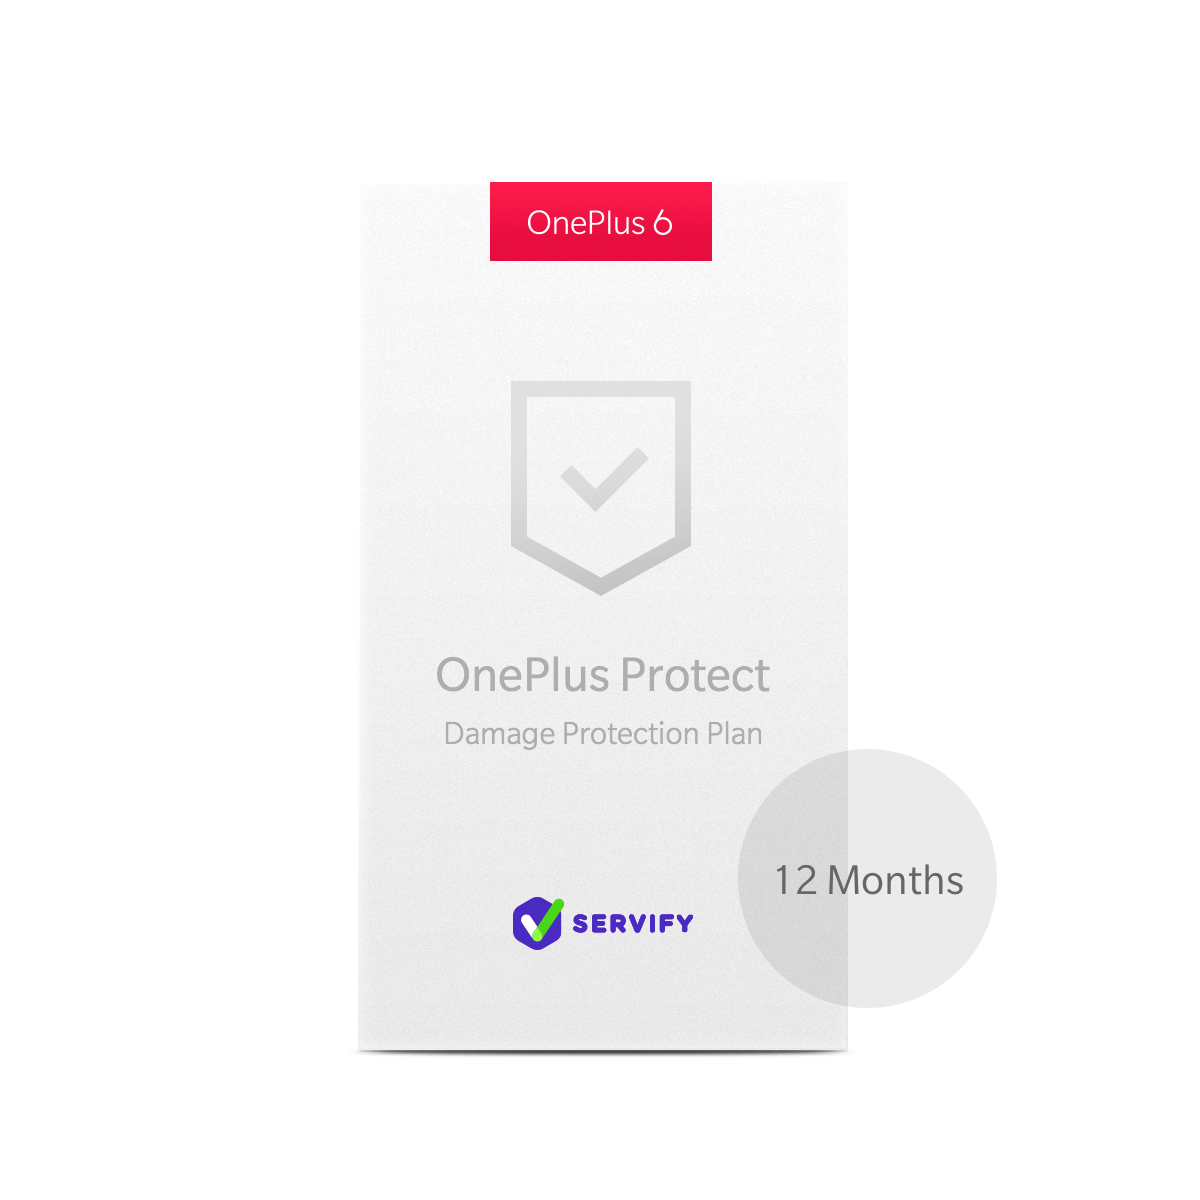 Damage Protection Plan For Oneplus 6 Oneplus United States